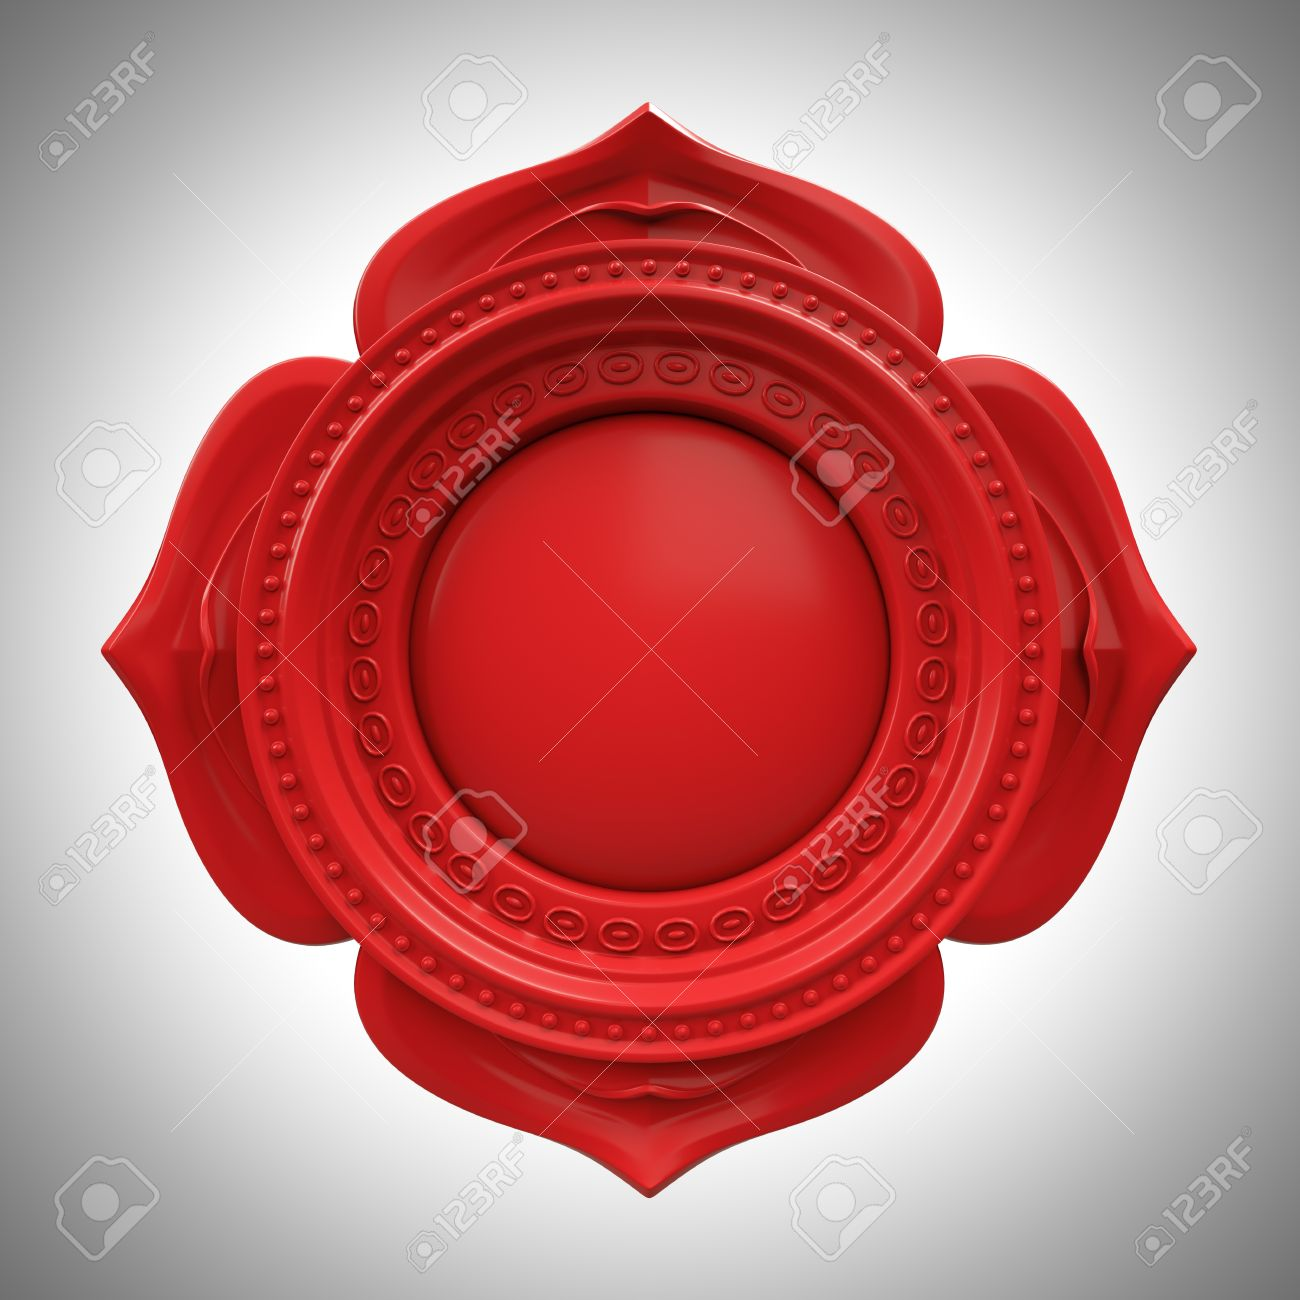 Hindu lotus flower stock photos pictures royalty free hindu hindu lotus flower red muladhara root or base chakra base 3d abstract symbol dhlflorist Gallery